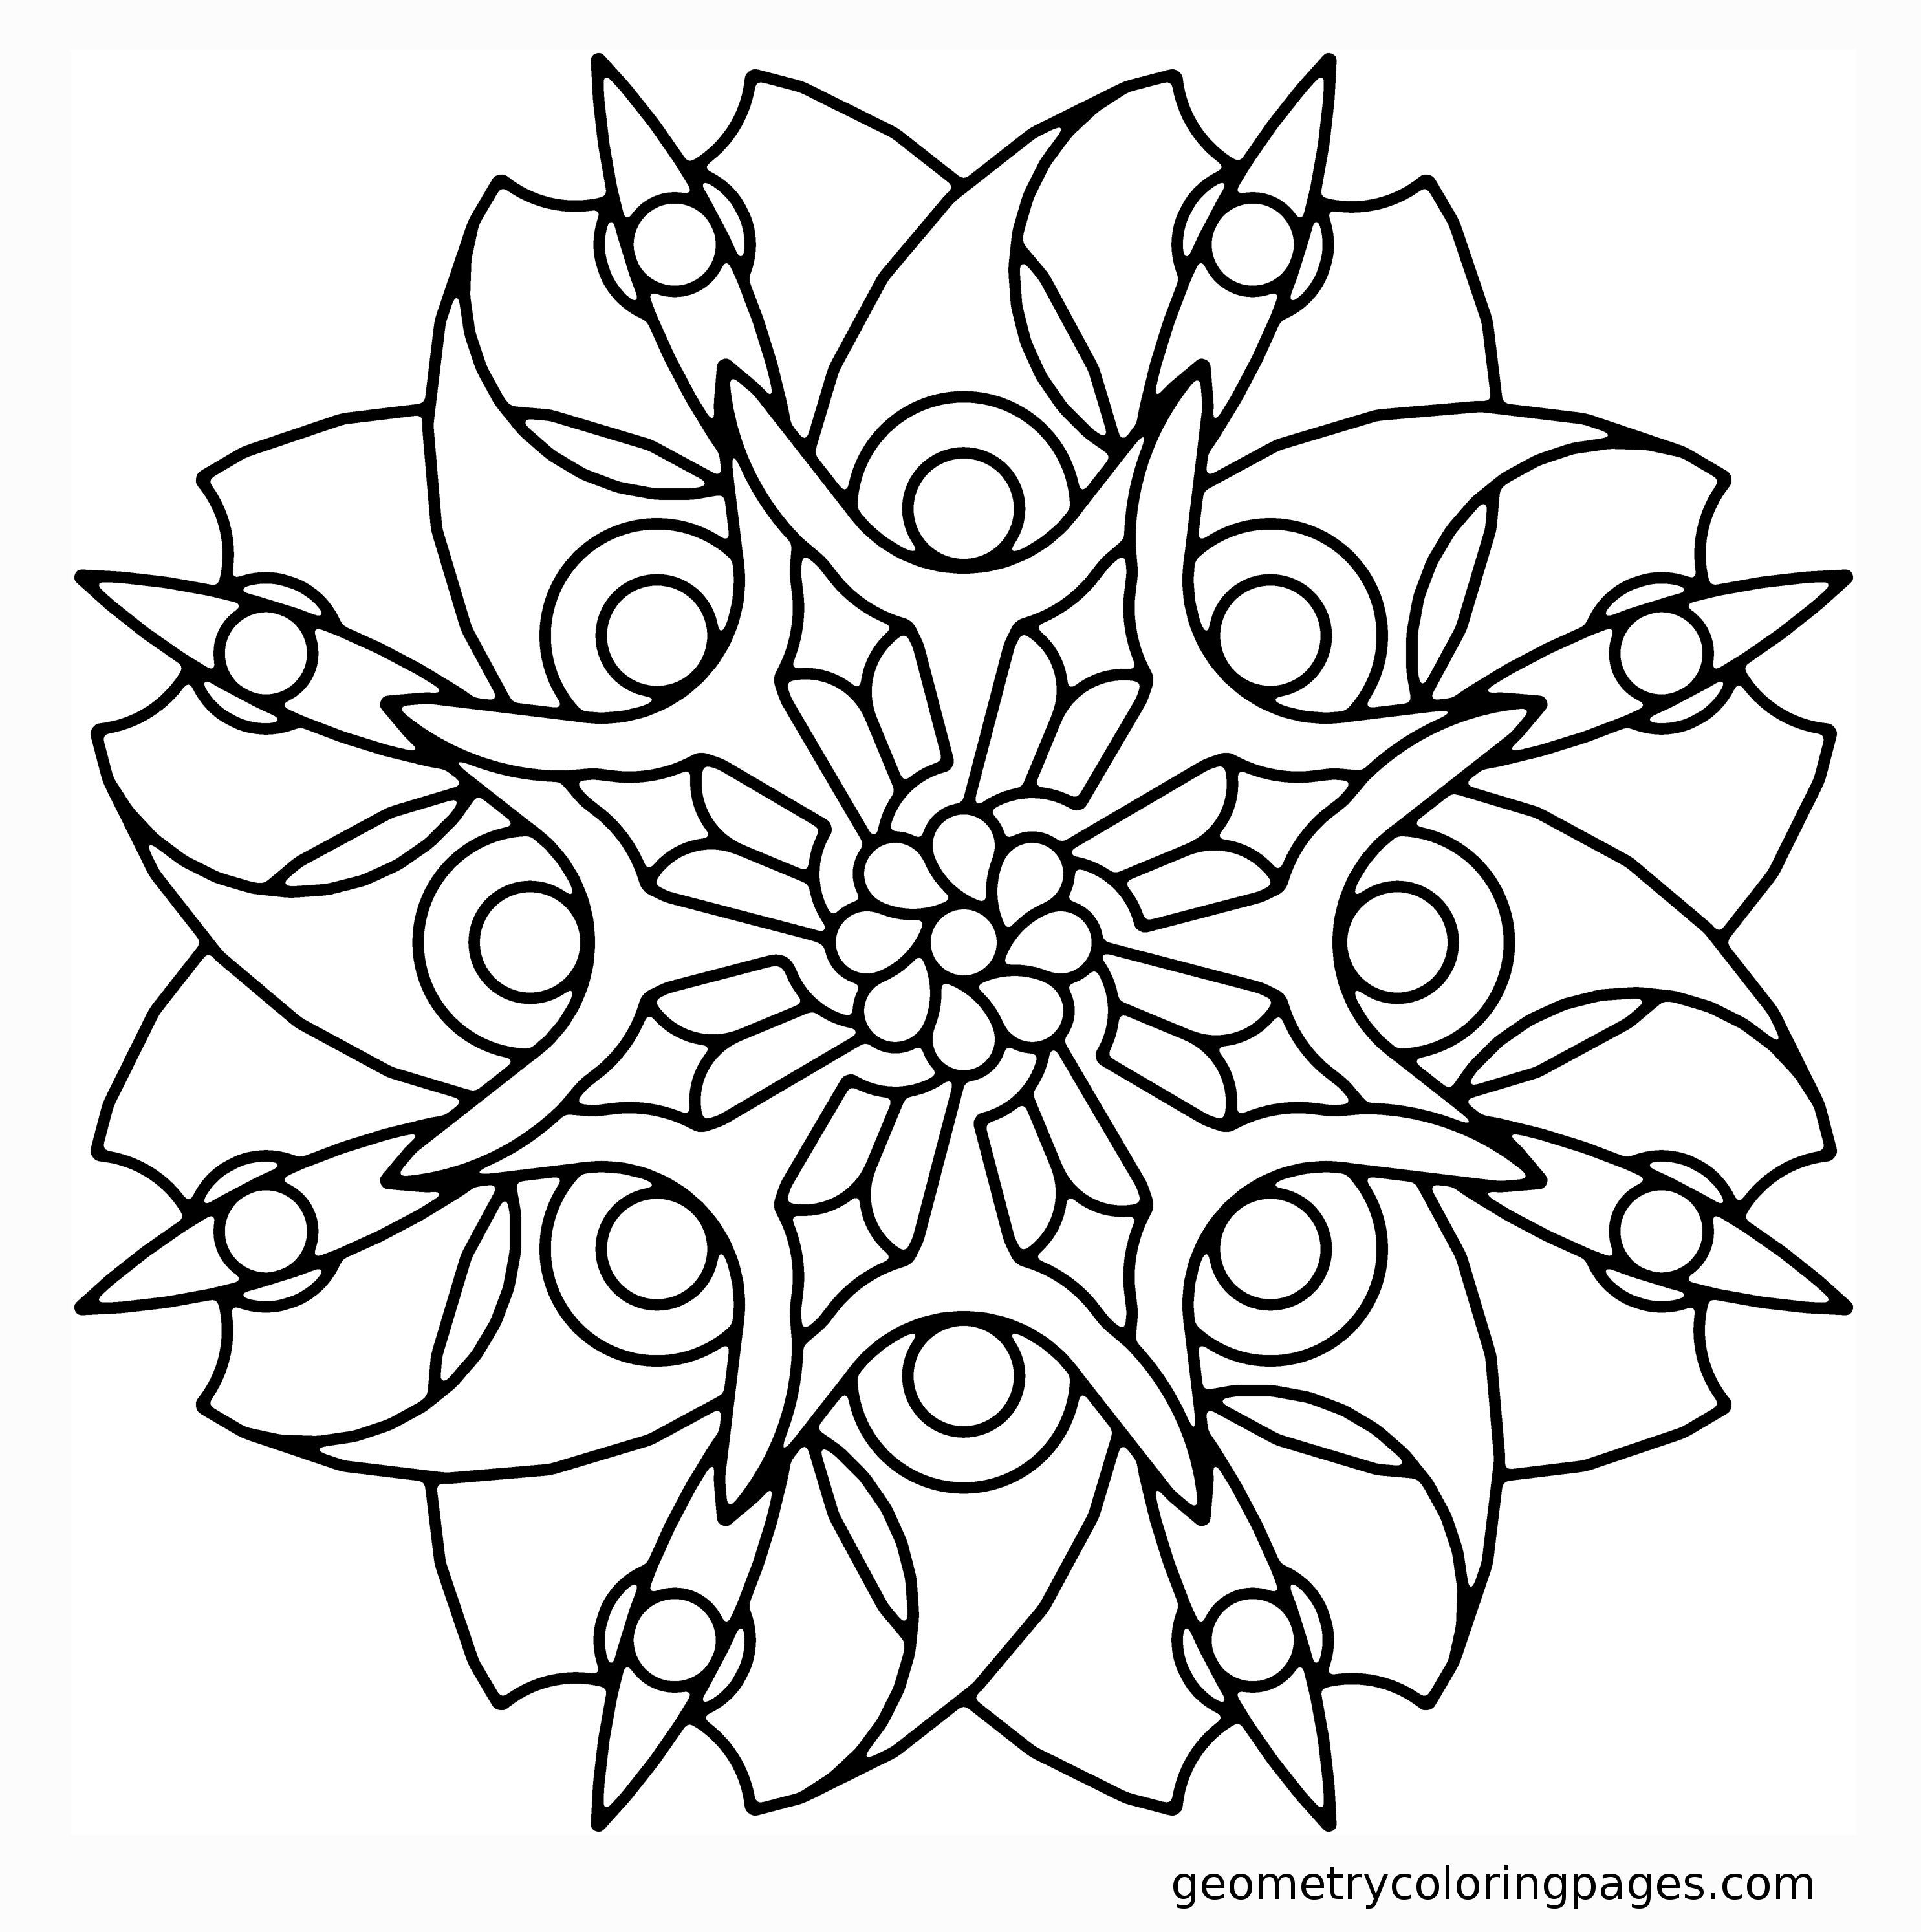 Geometry coloring page blade flower